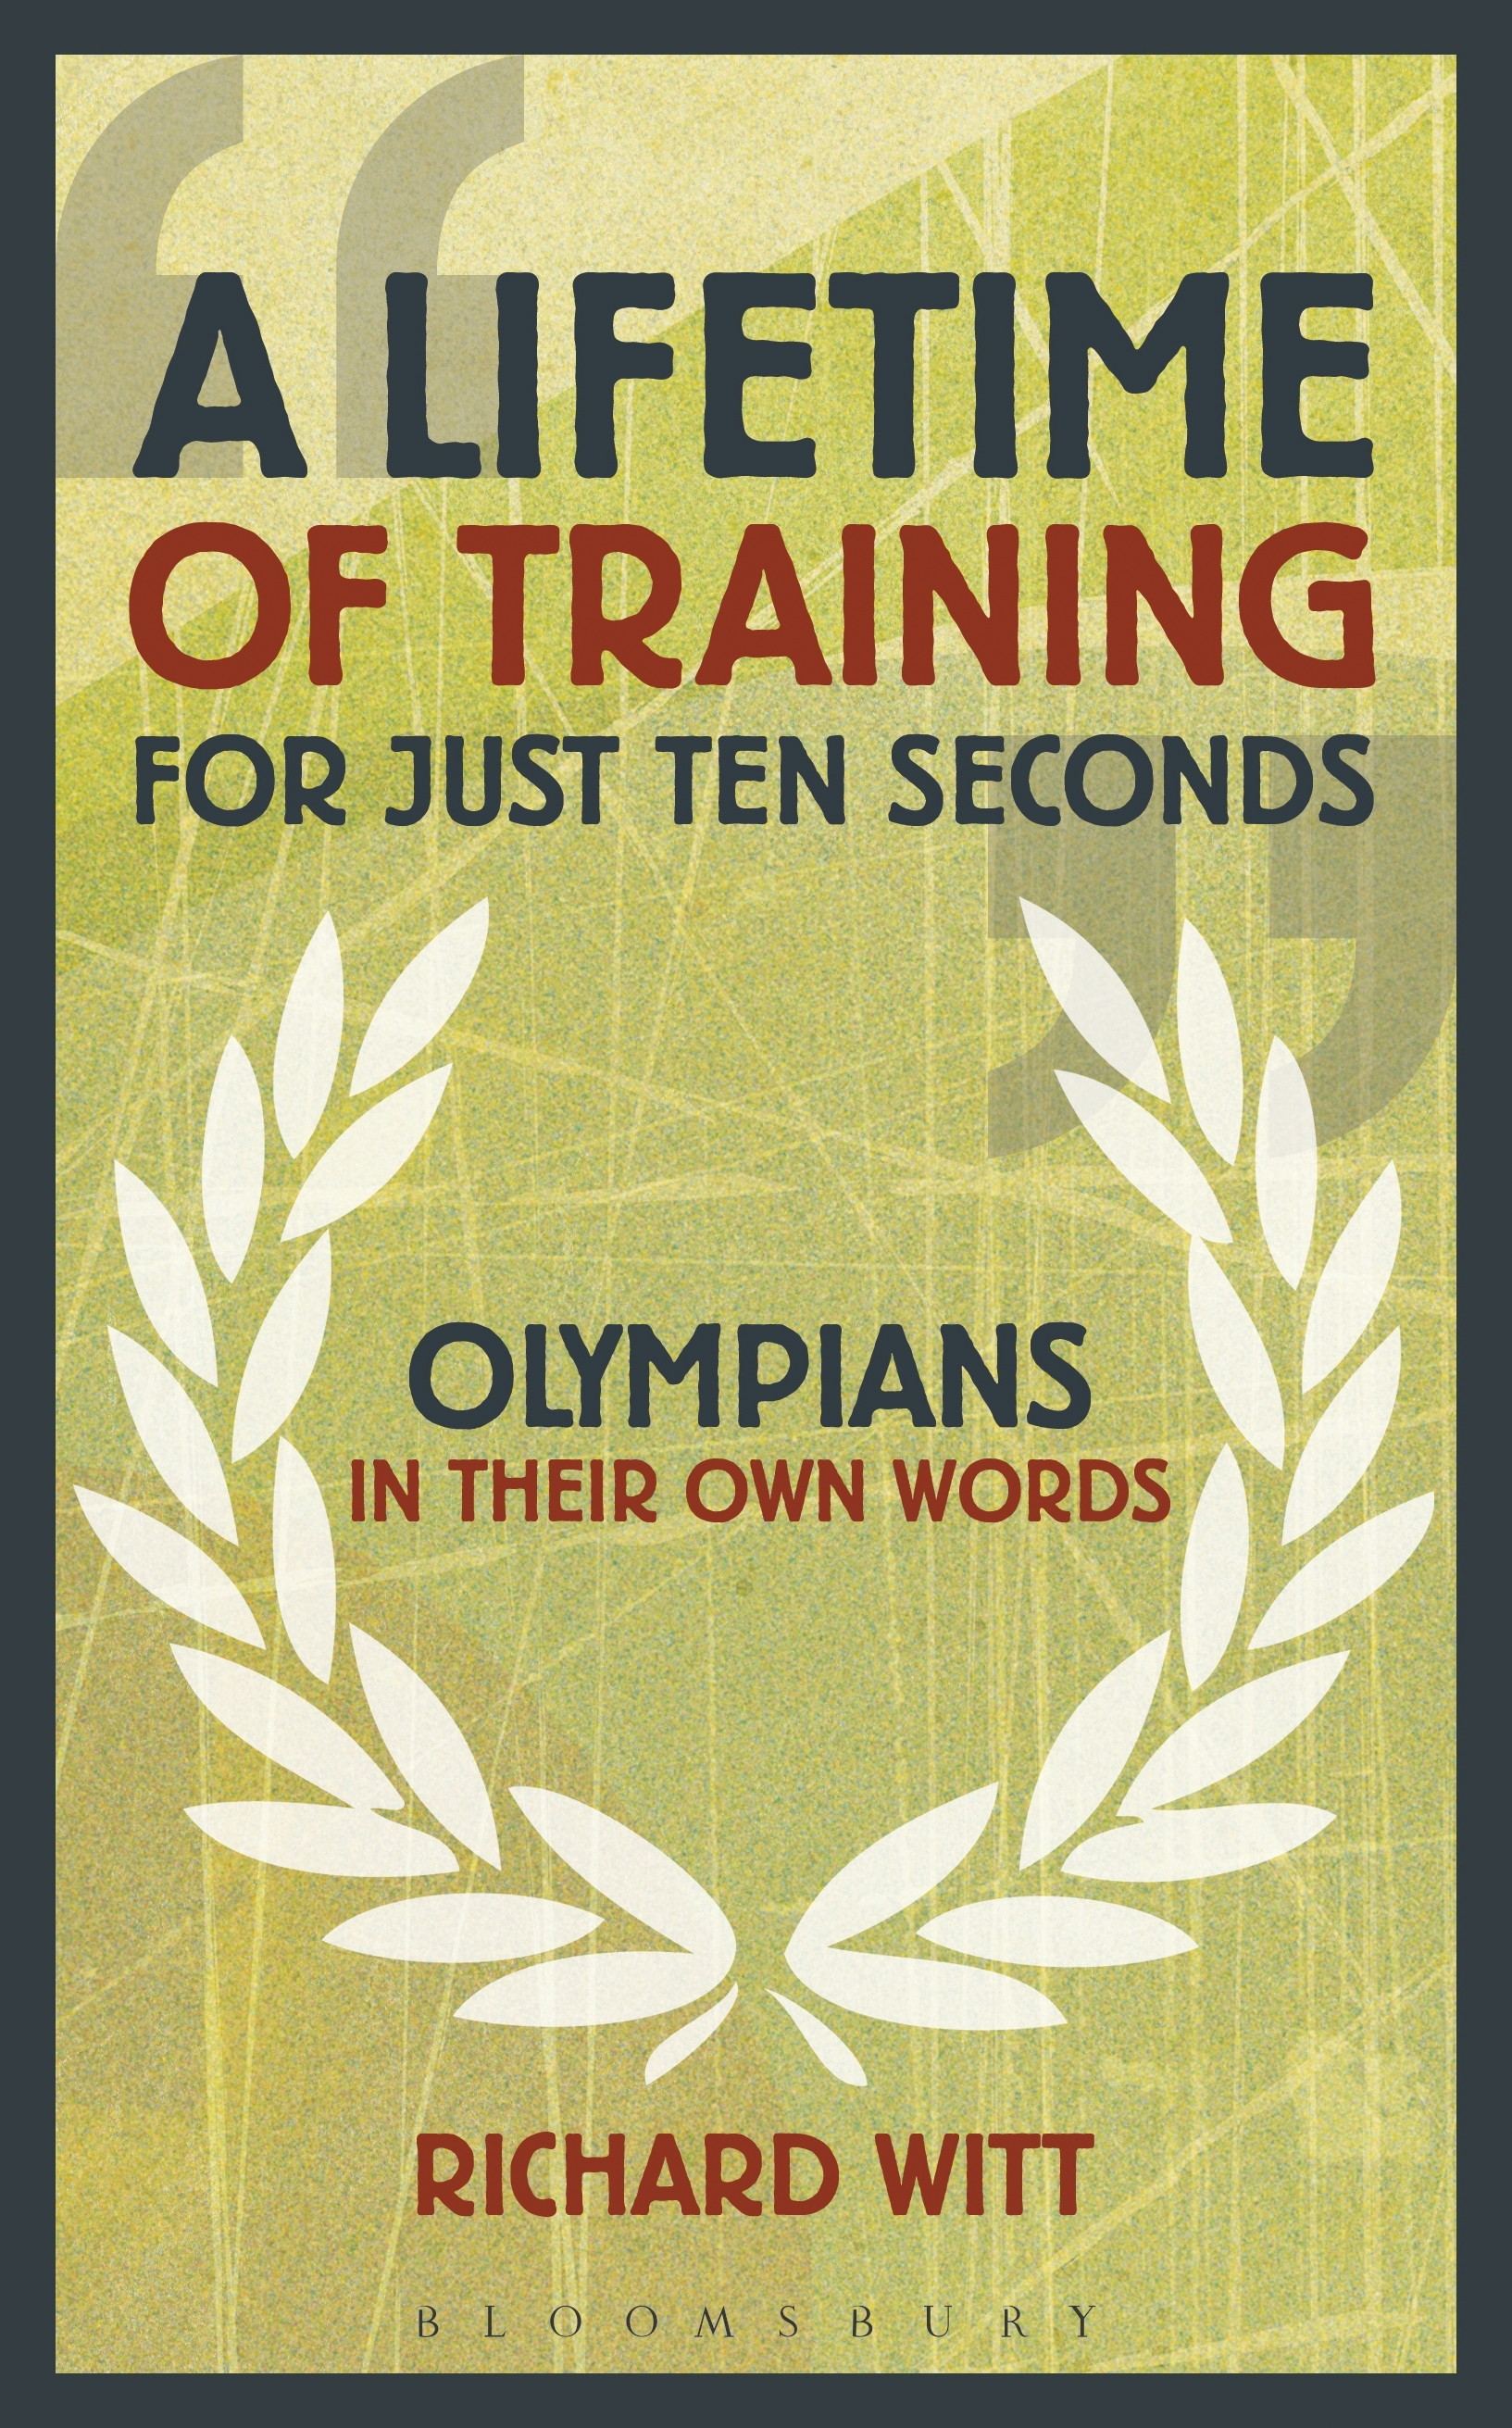 A Lifetime of Training for Just Ten Seconds Olympians in their own words